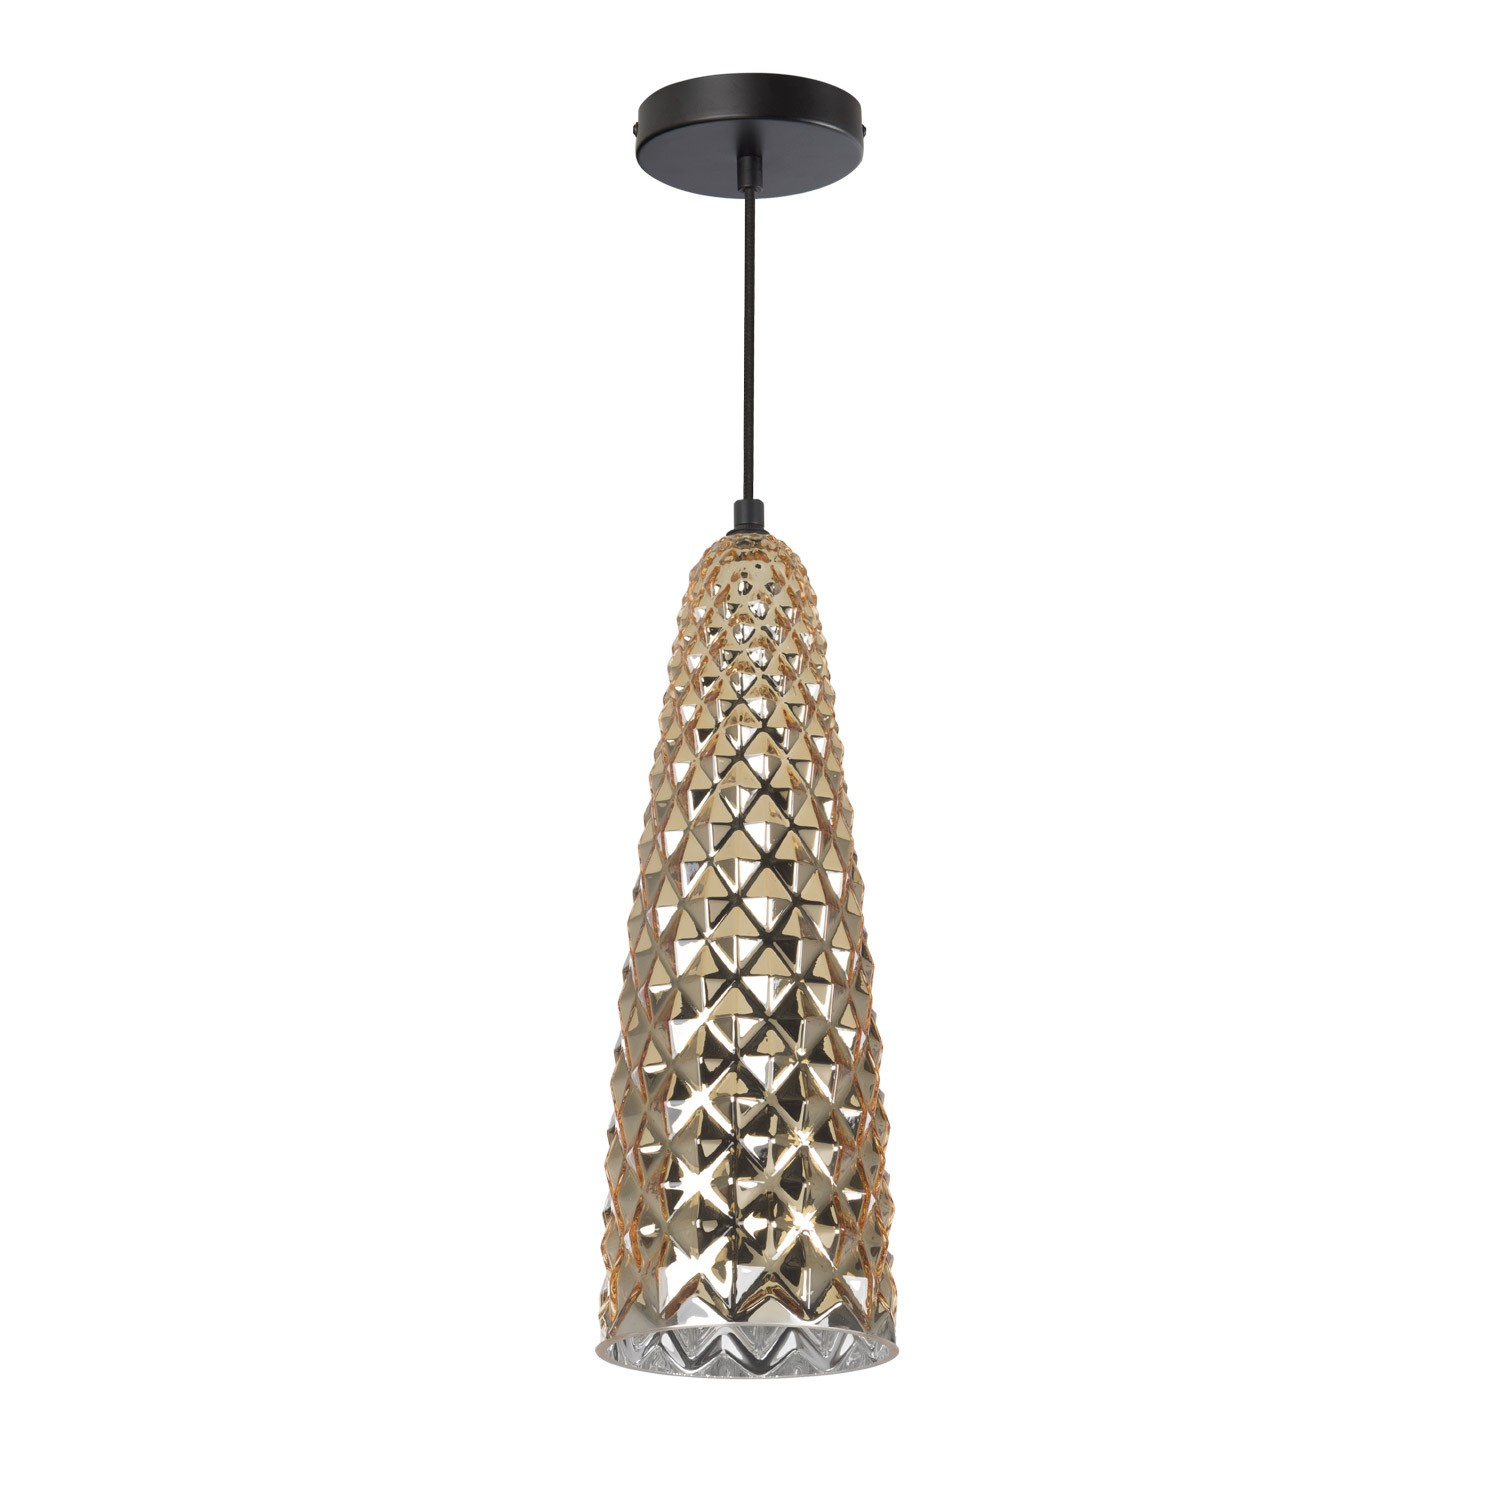 Ceiling Lamp Agbar, gallery image 1